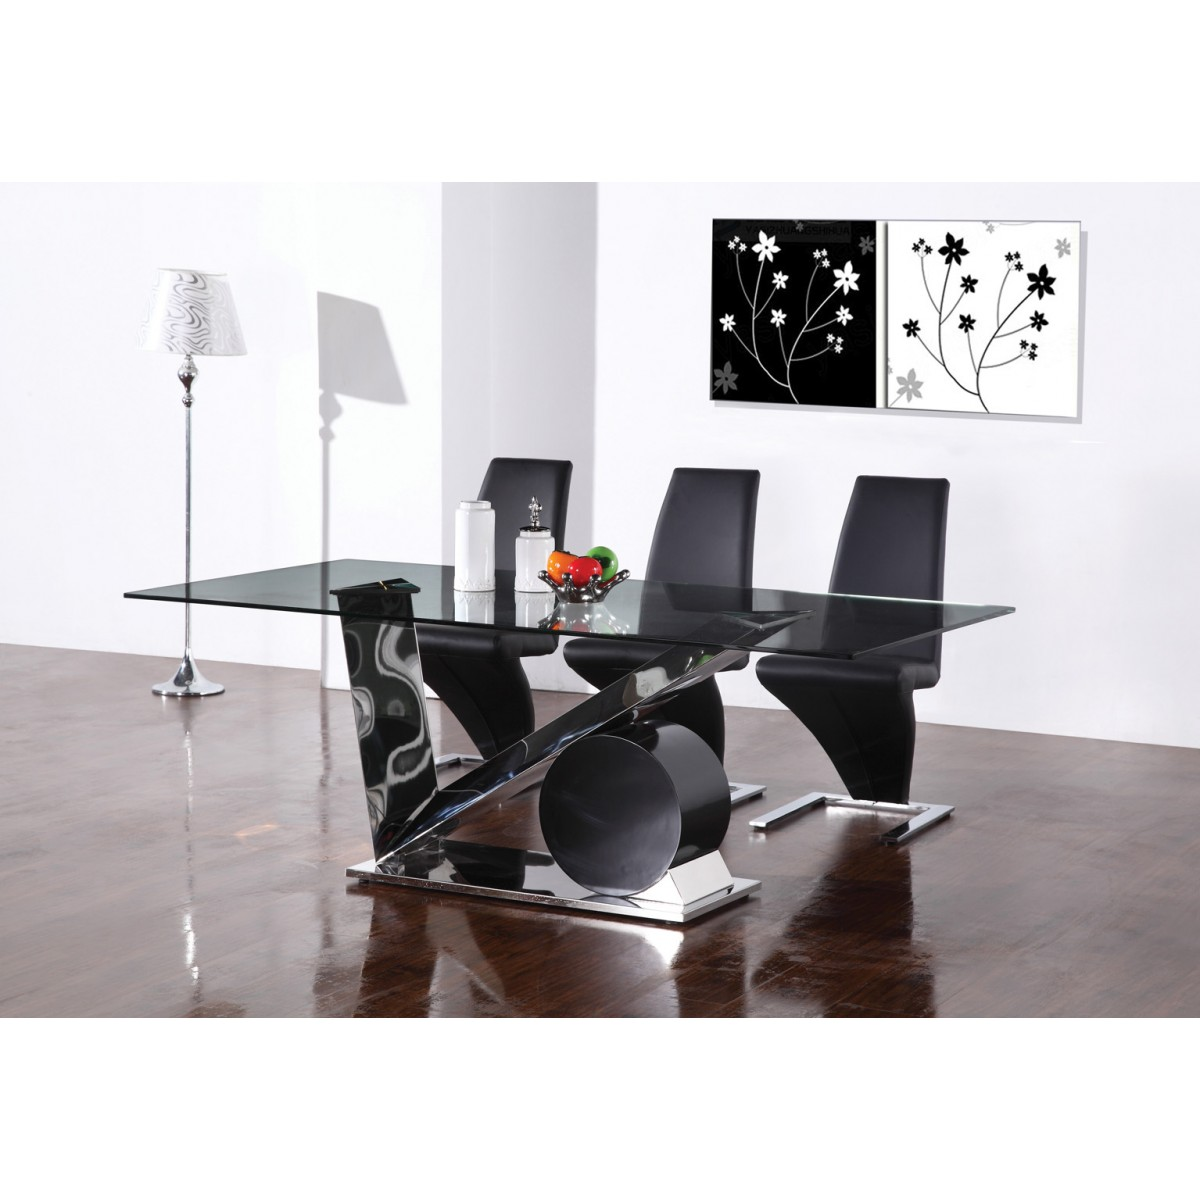 Formidable set de table pour table en verre 4 table for Table salle a manger en verre